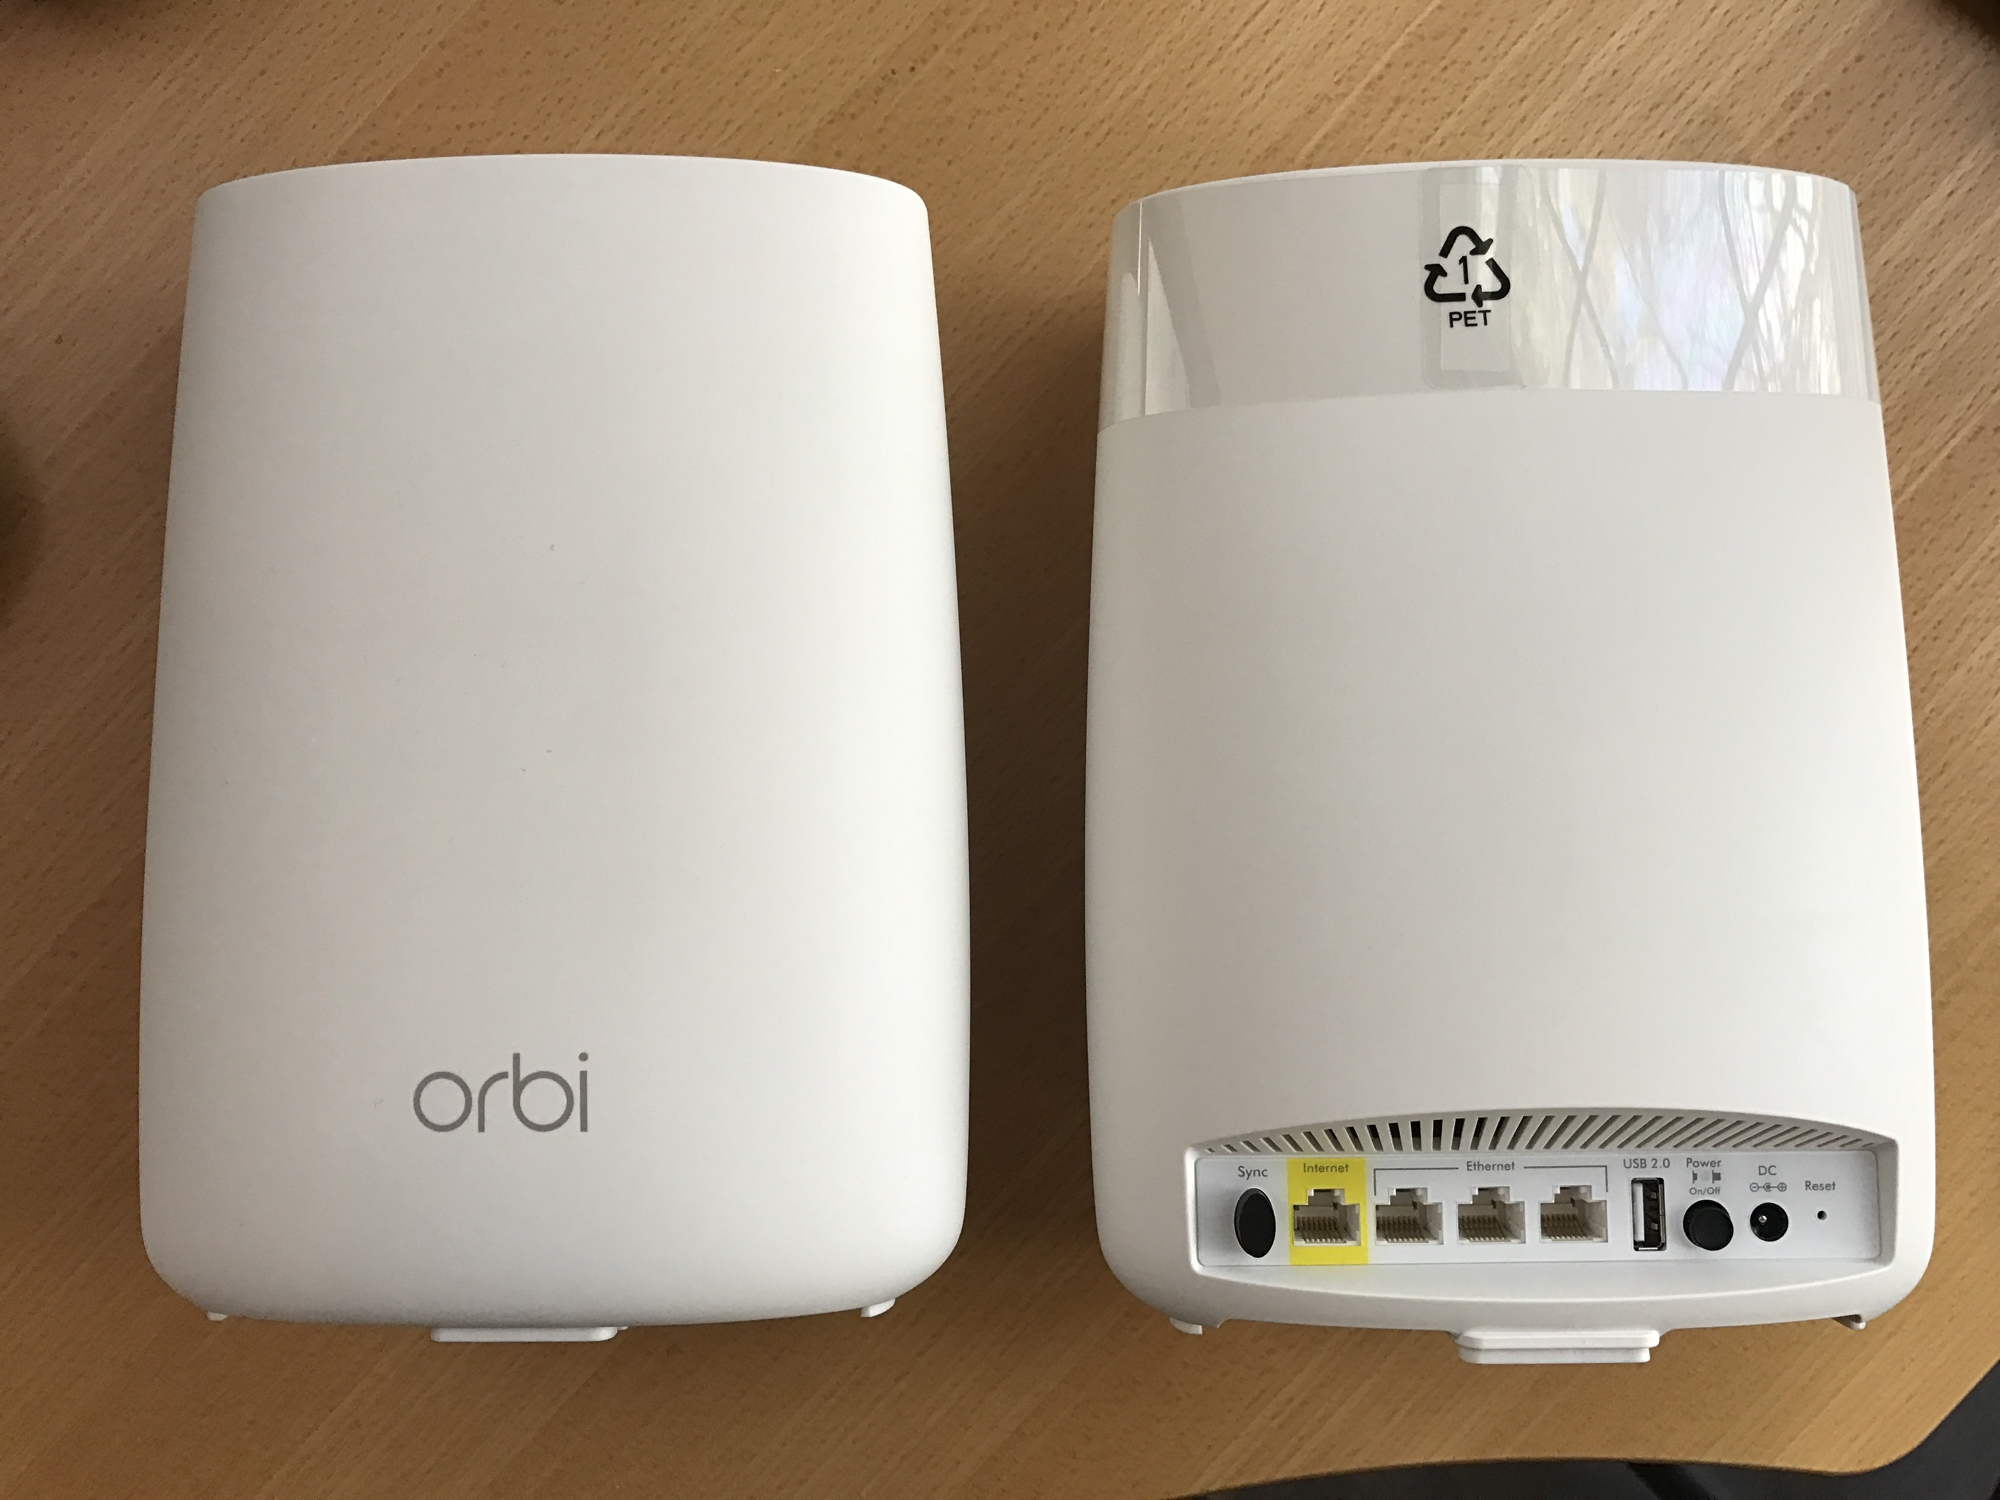 Wi-Fi Mesh Systems Compared: eero, Orbi, AmpliFi - Page 3 of 5 - The ...